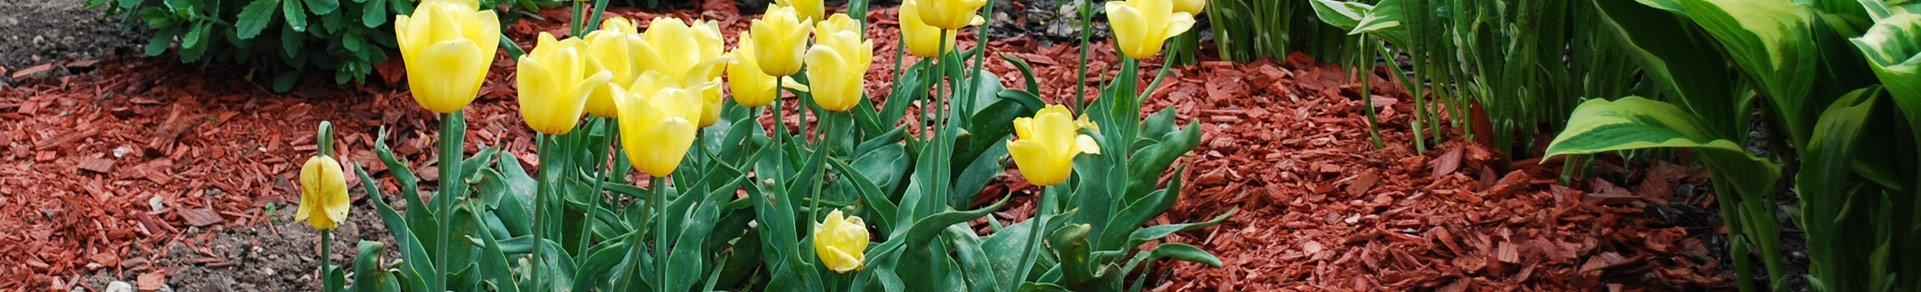 mulch and yellow tulips